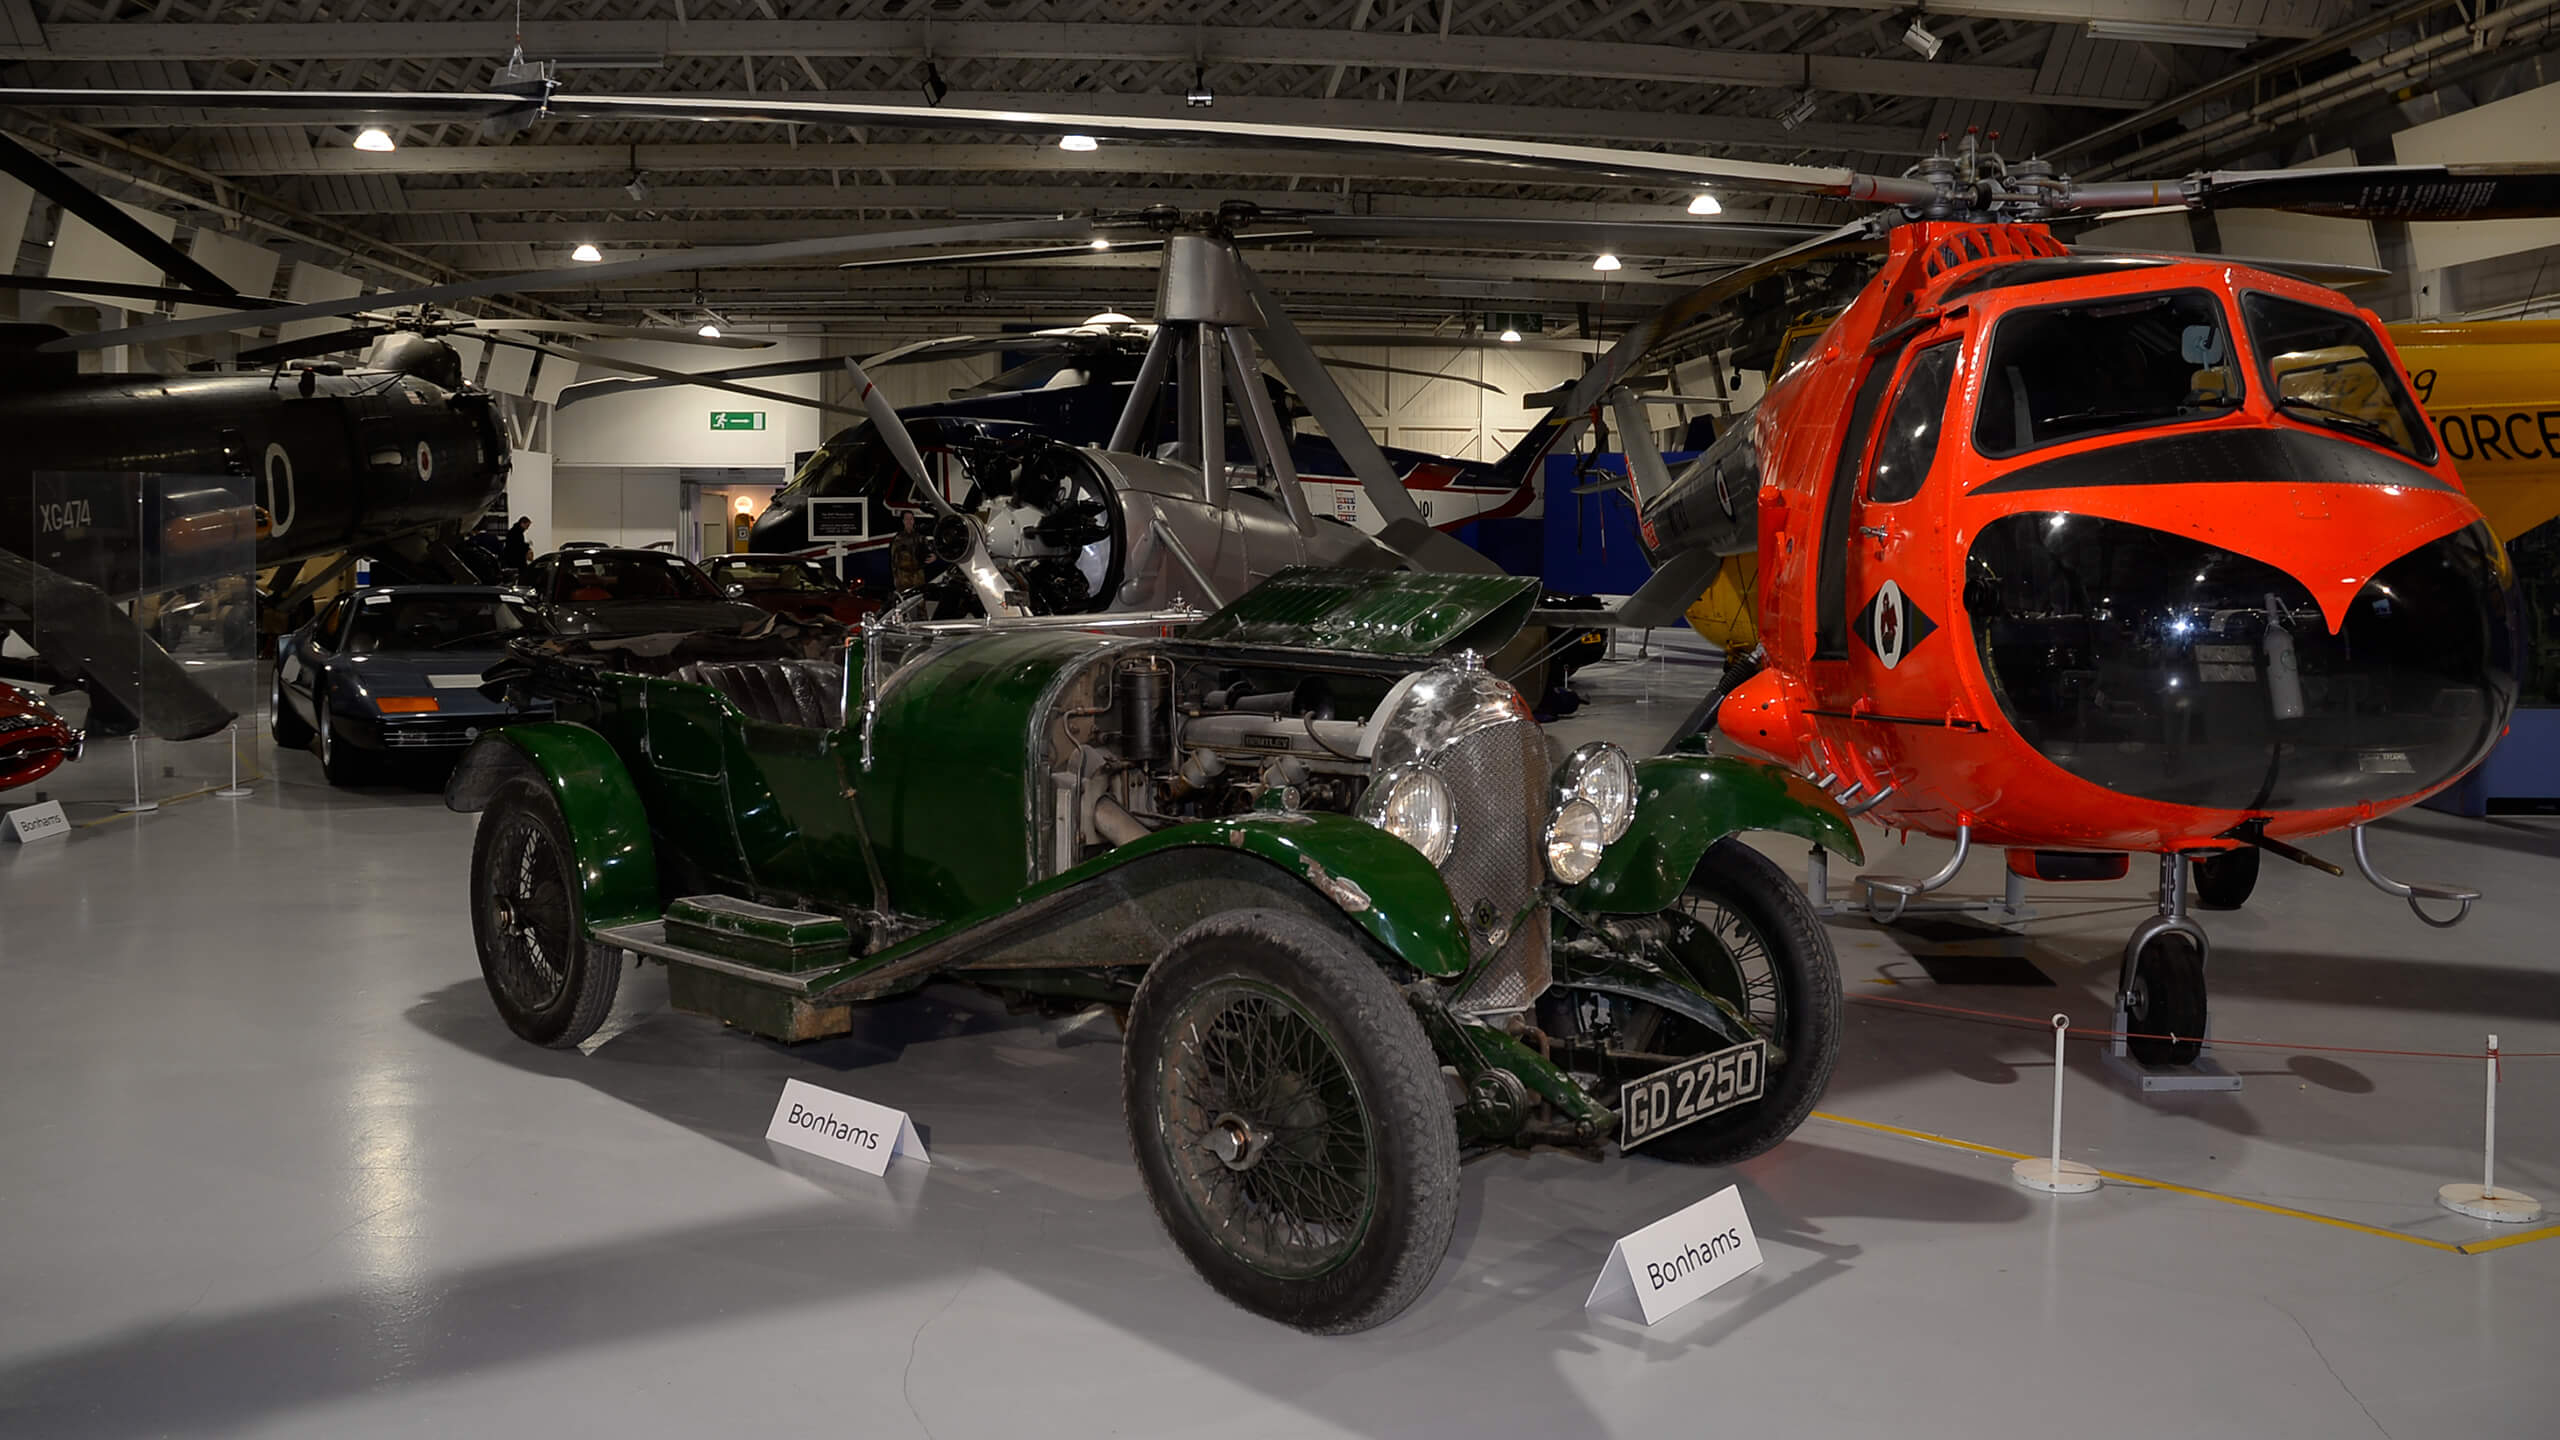 £1.78m gross – a bumpy landing for Bonhams at the Hendon RAF Museum